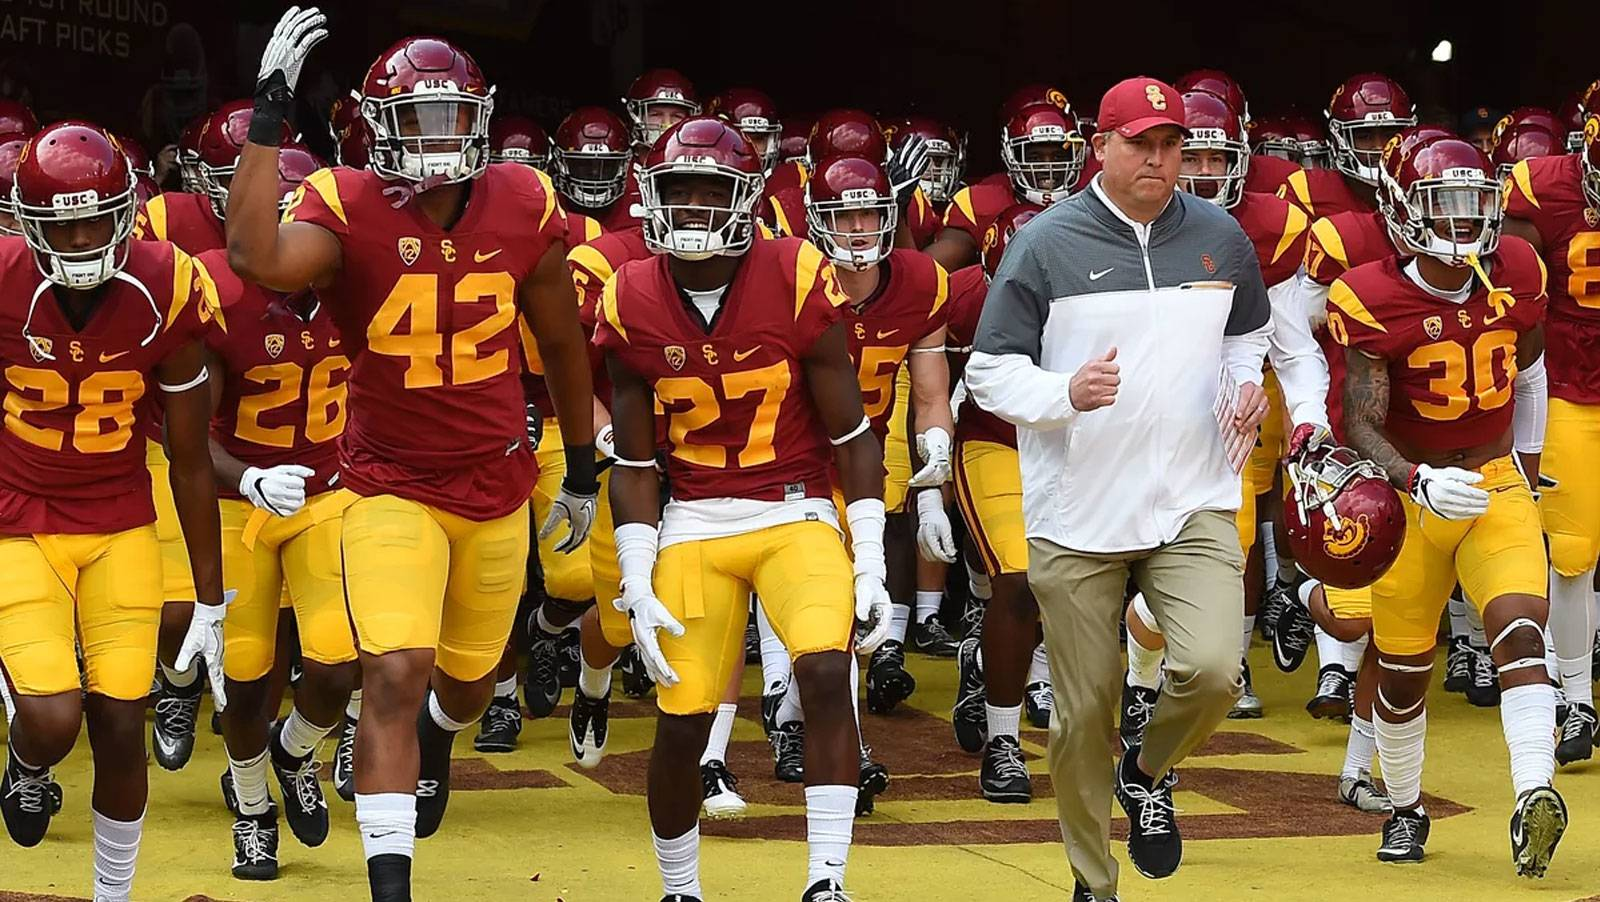 Is USC getting too much love from oddsmakers heading into week 3?